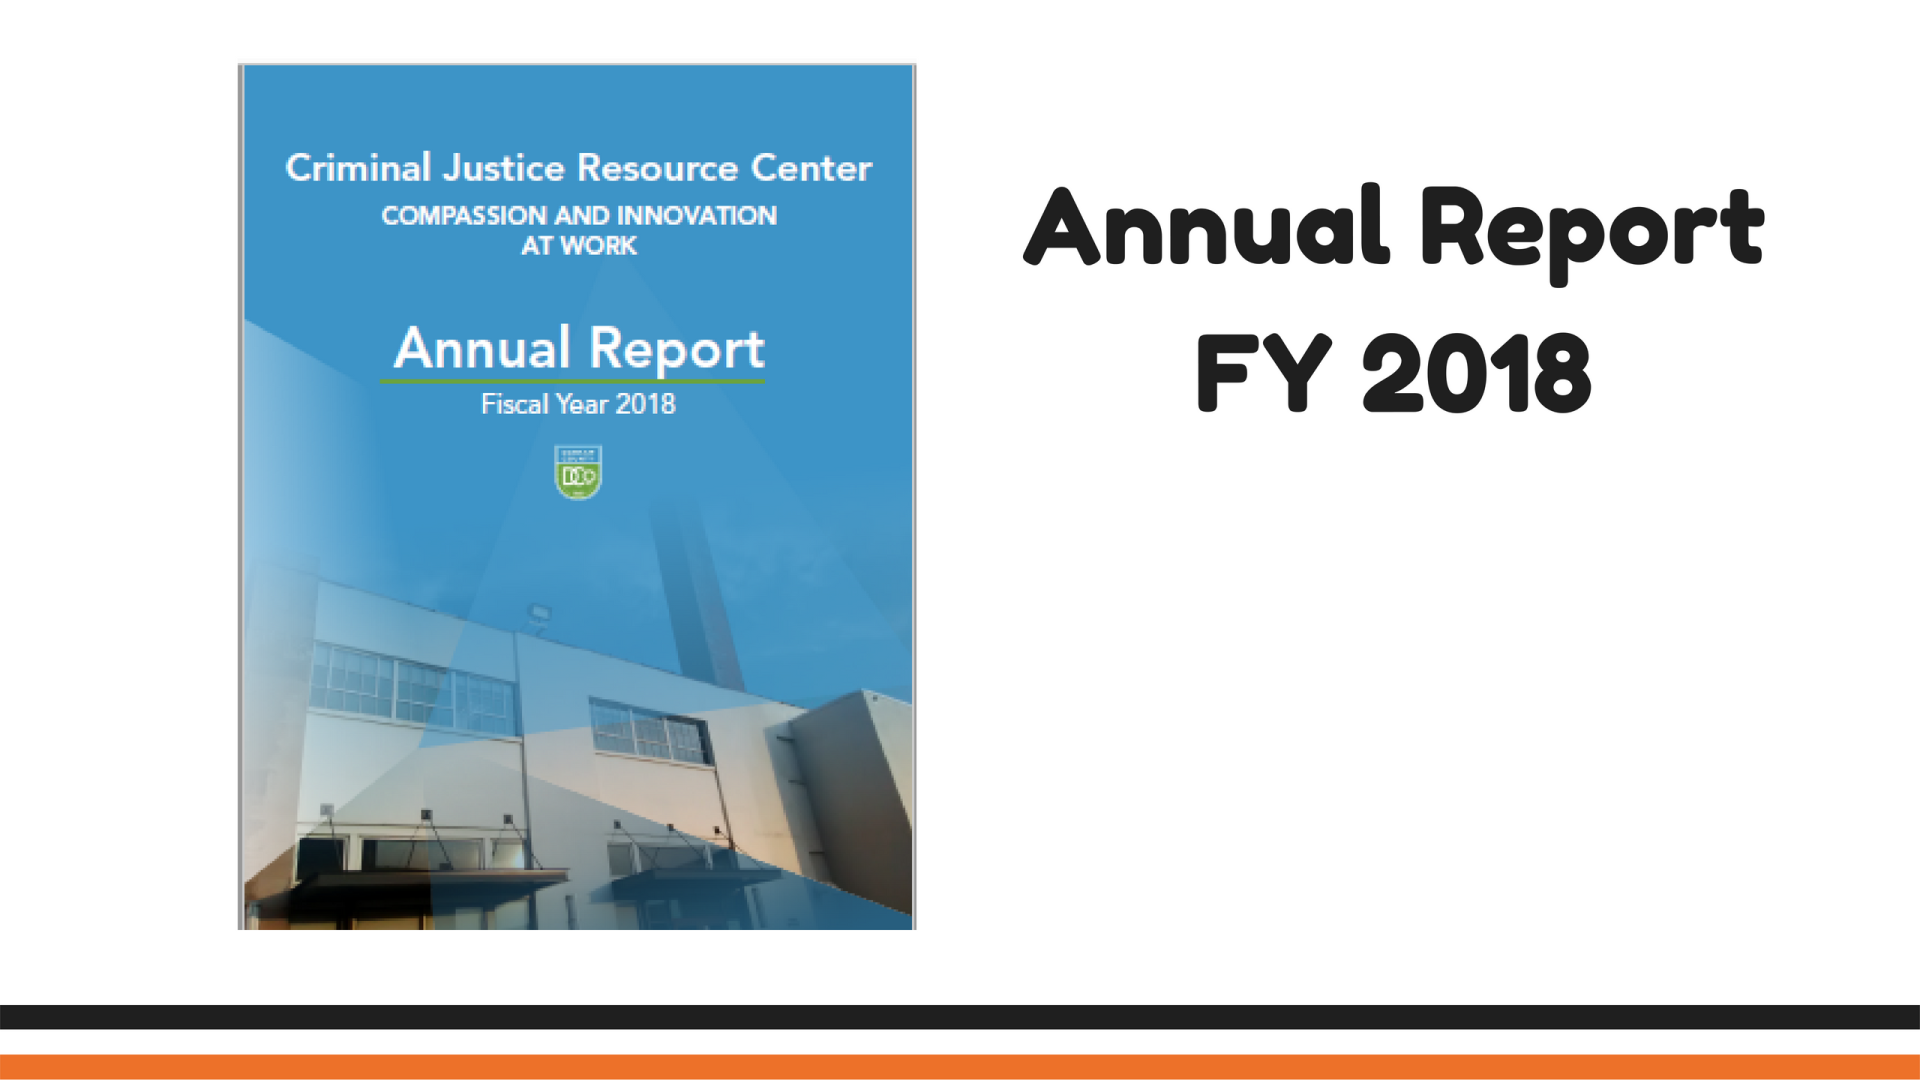 FY 2018 Annual Report